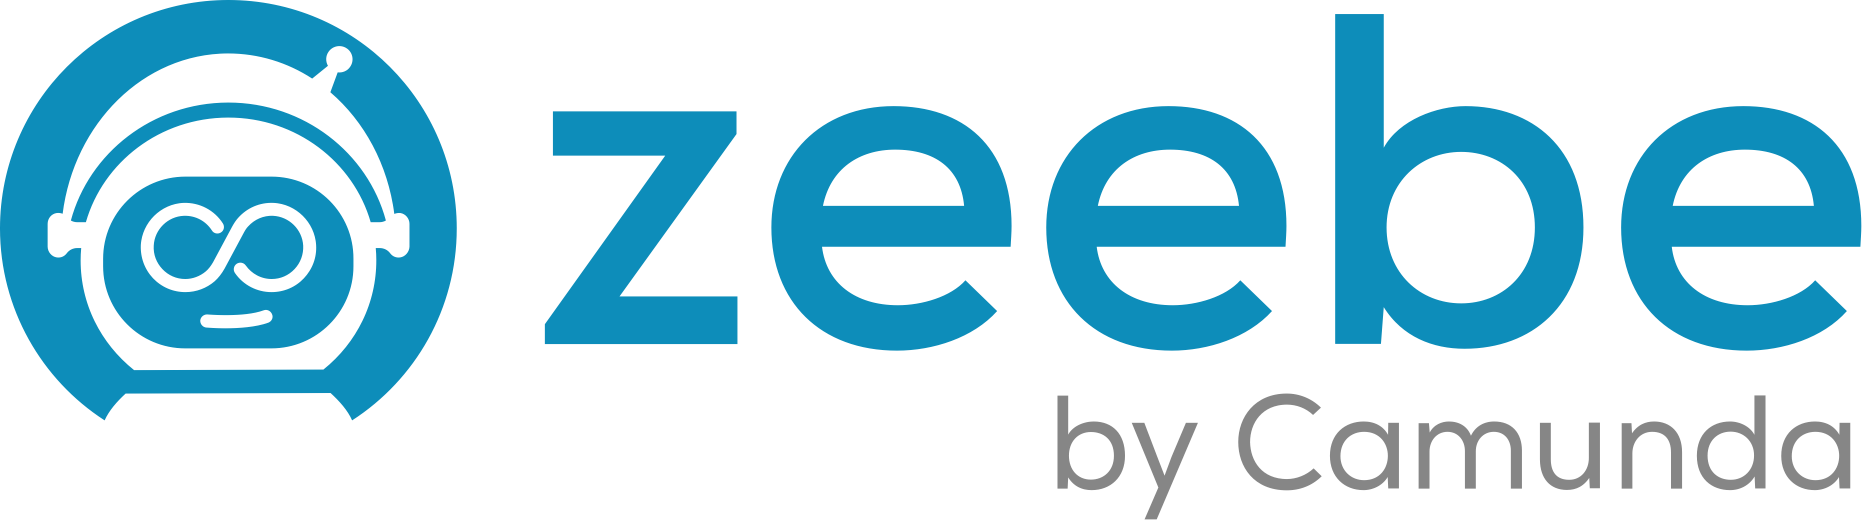 Node js client for Zeebe Microservices Orchestration Engine